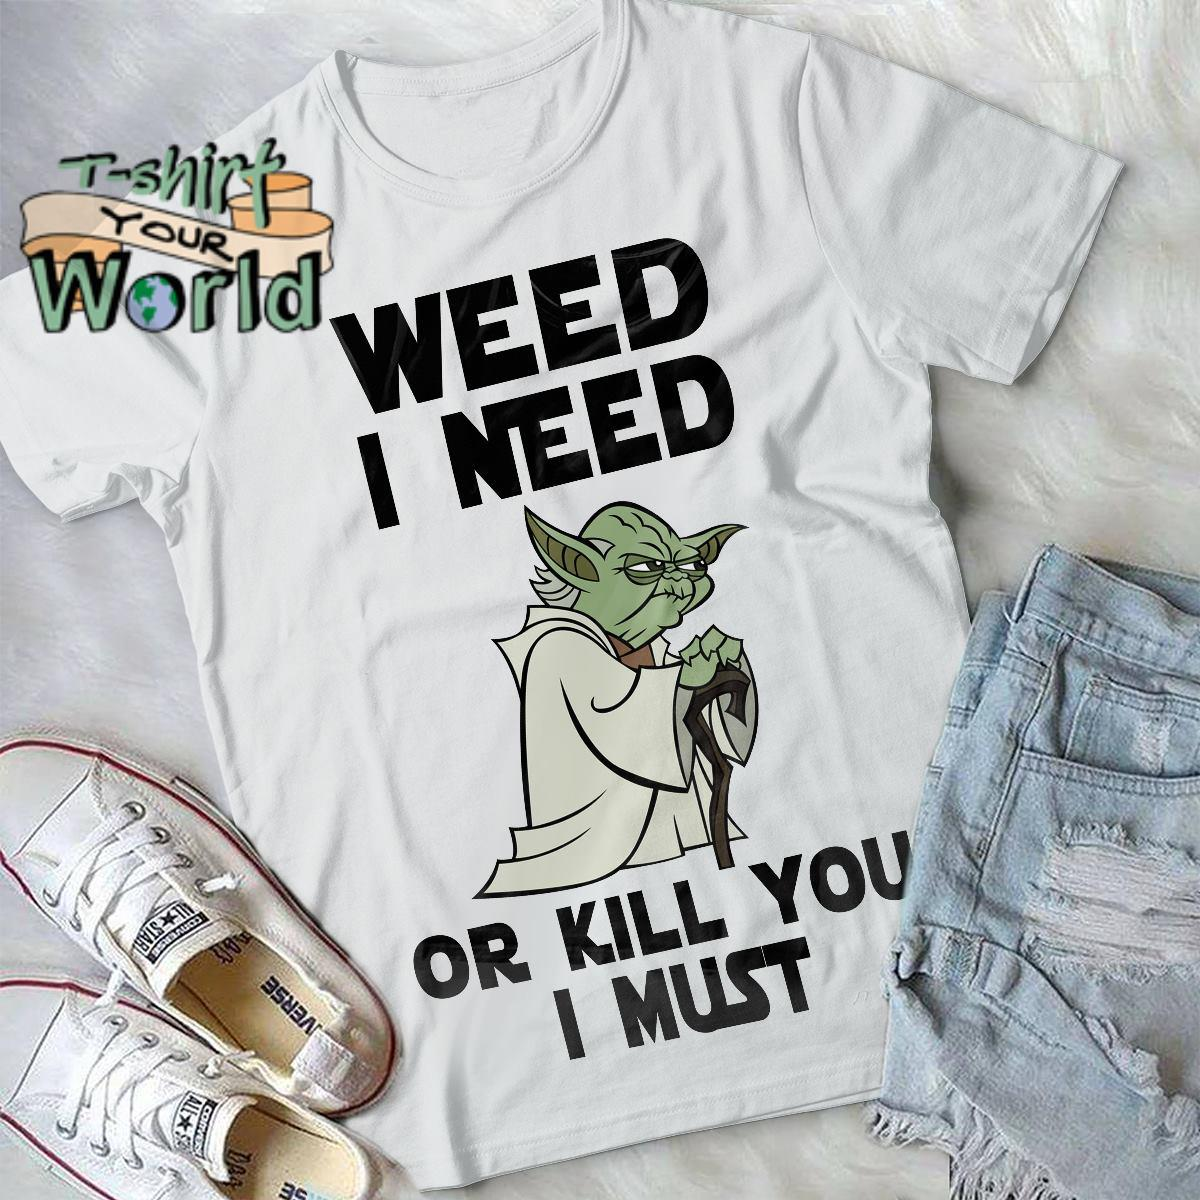 Star Wars Clone Wars Yoda Patch Weed I need or kill you I must shirt